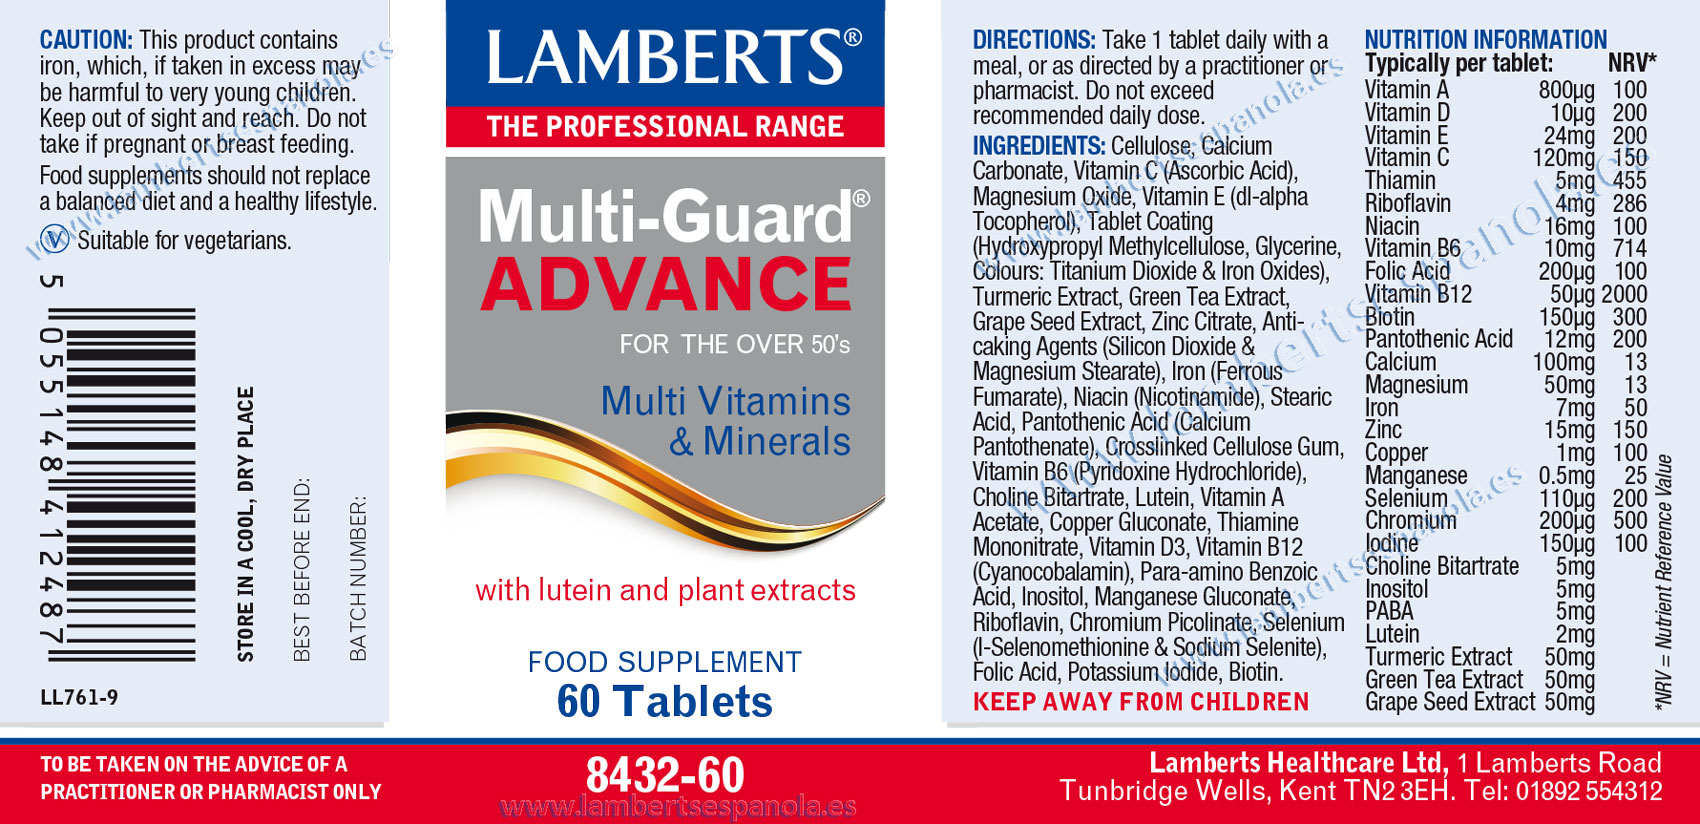 label of Multi-Guard Advance by Lamberts with its properties and indications